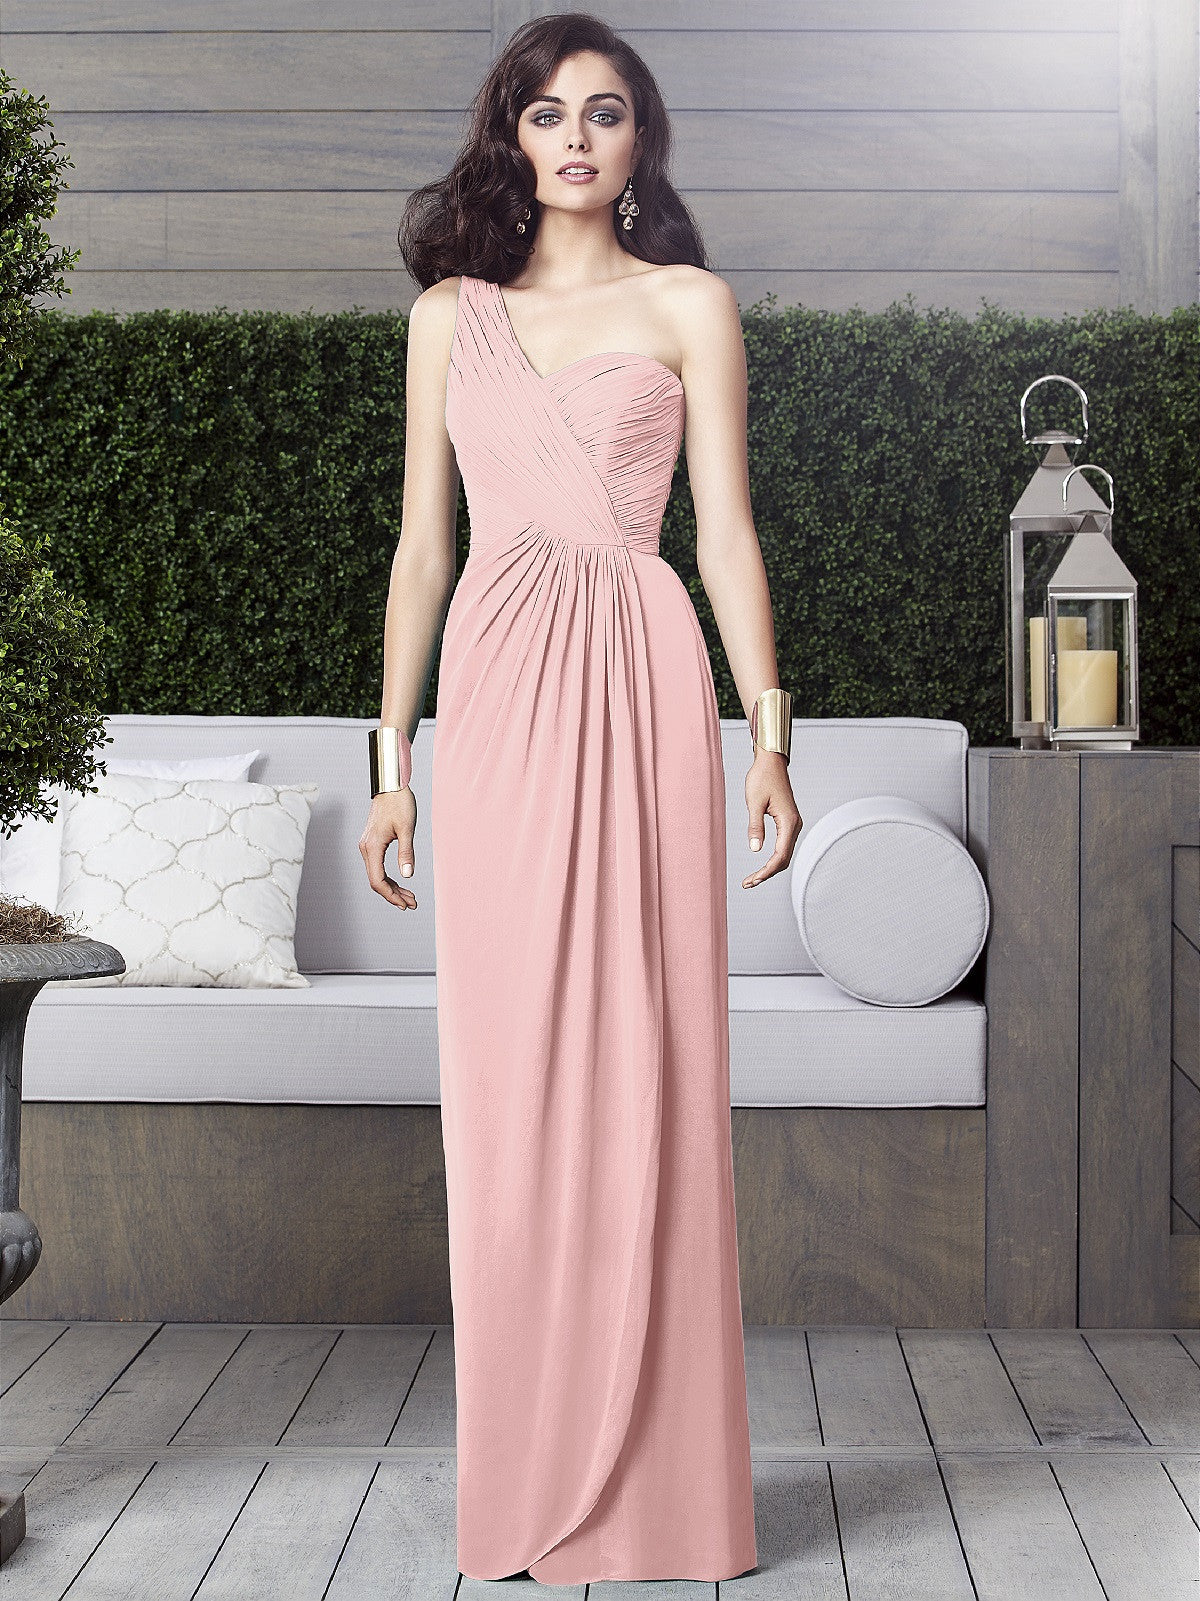 Dessy Collection Style 2905 - Sample Bridesmaid Dress | Brideside